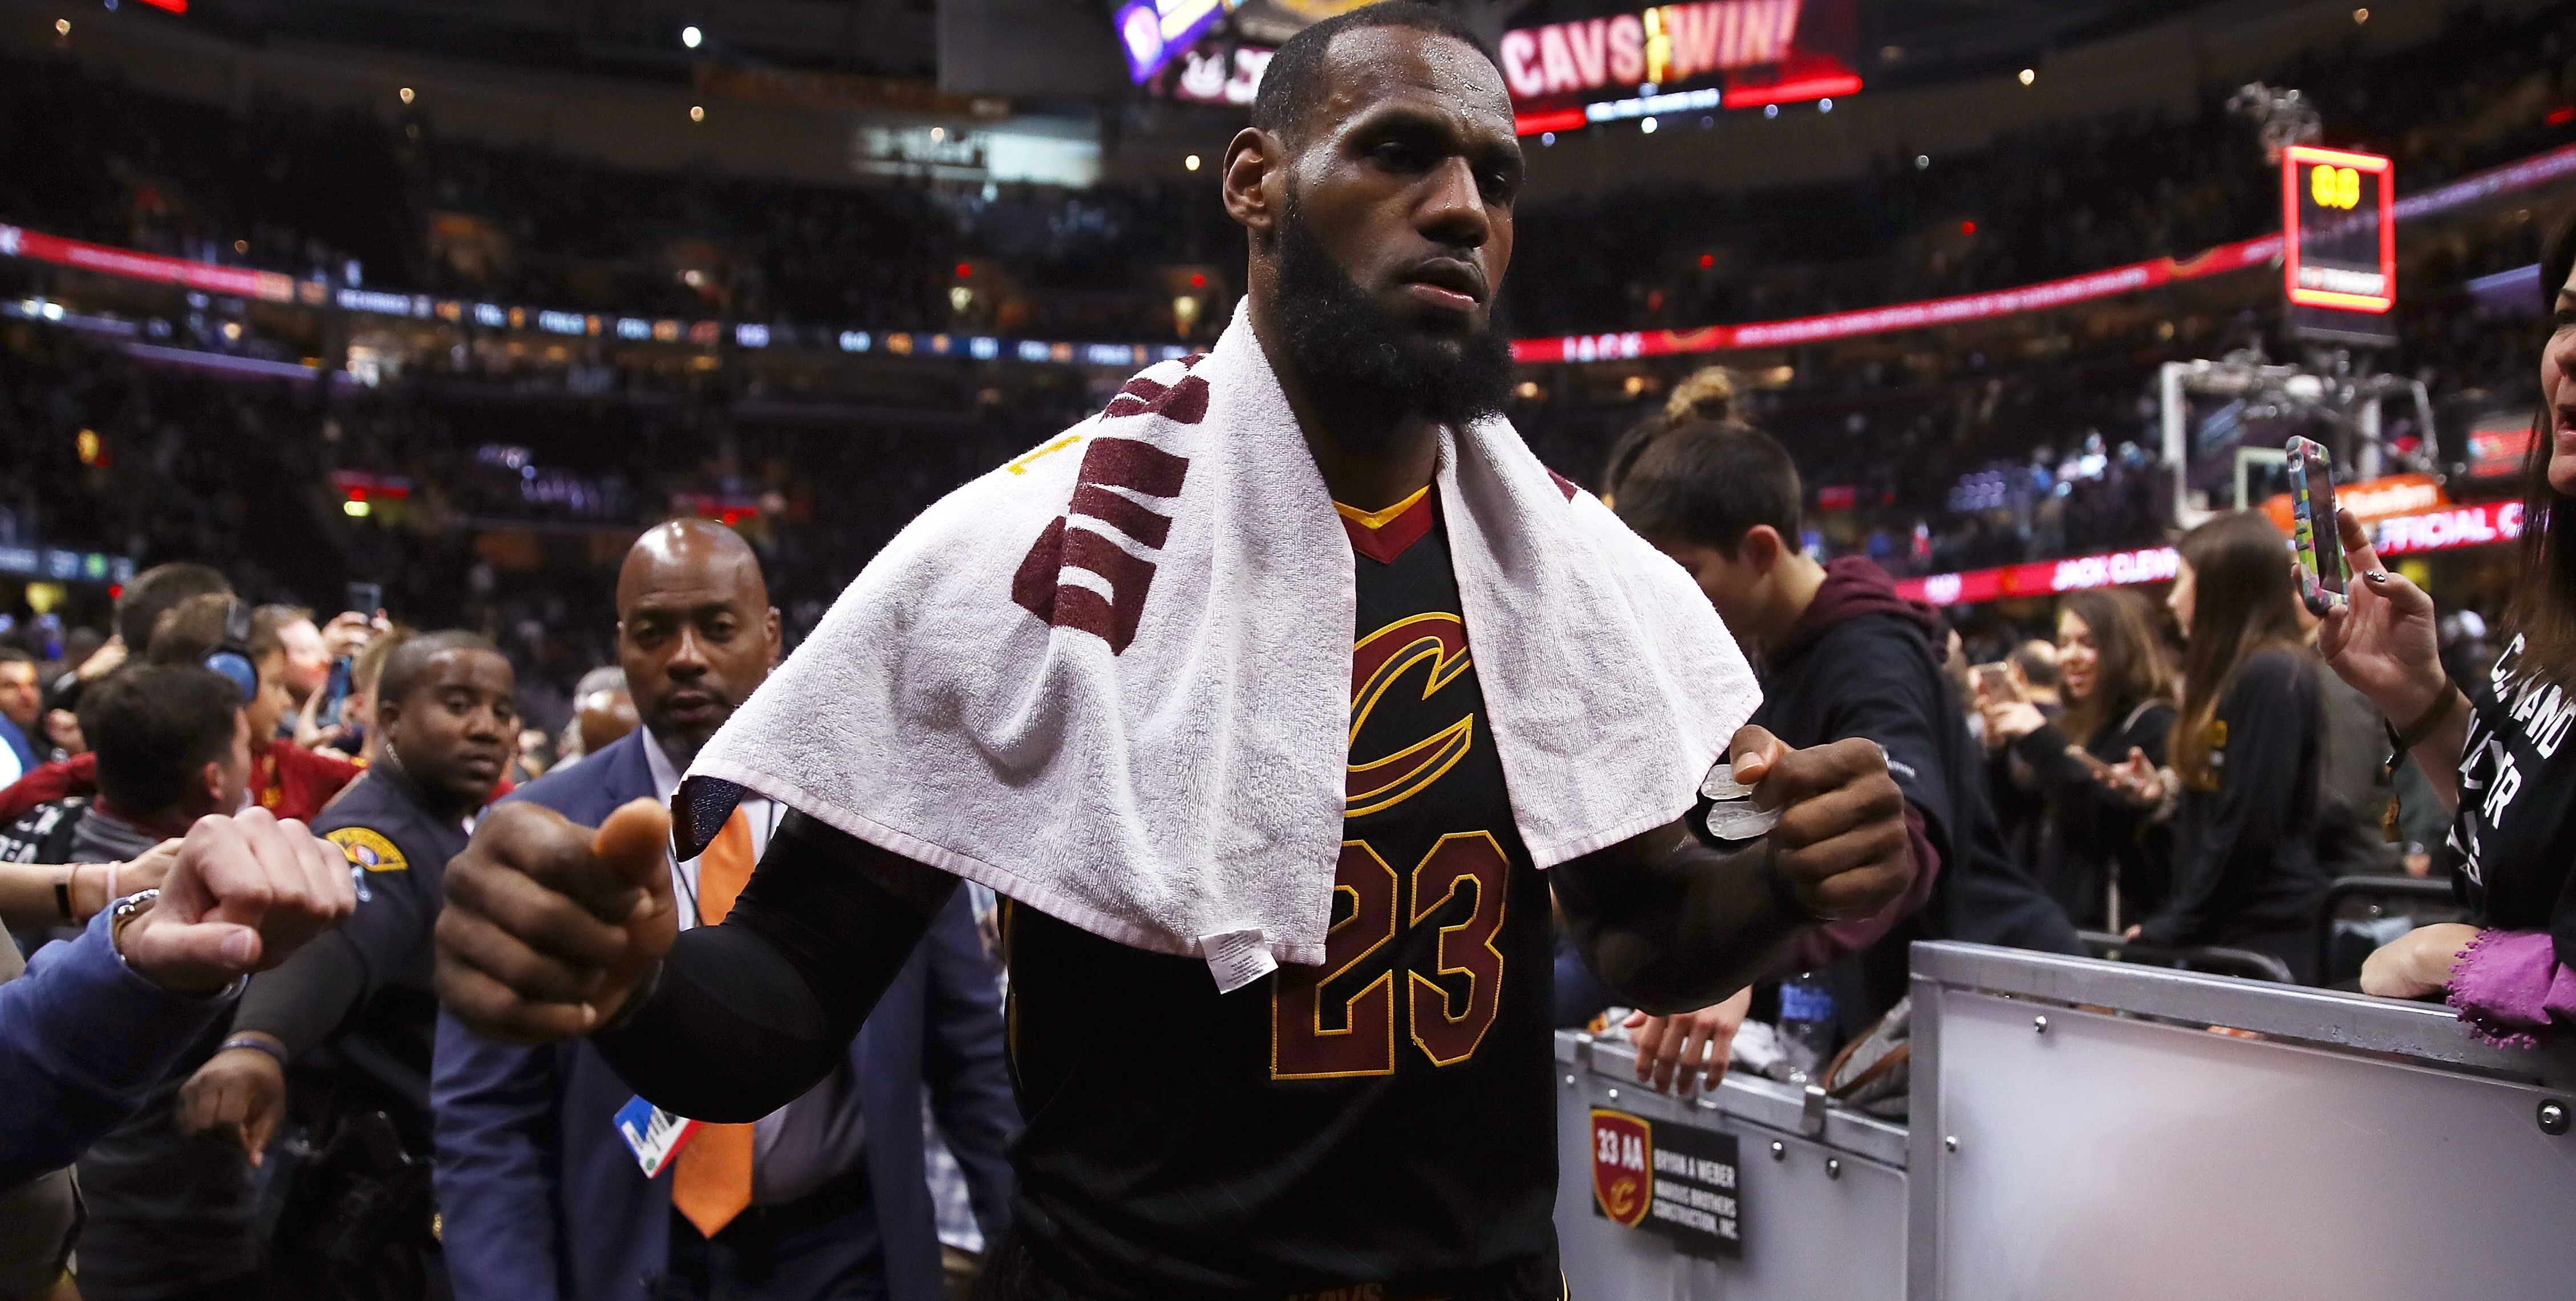 Kings ransom How much more can LeBron do? Basketball